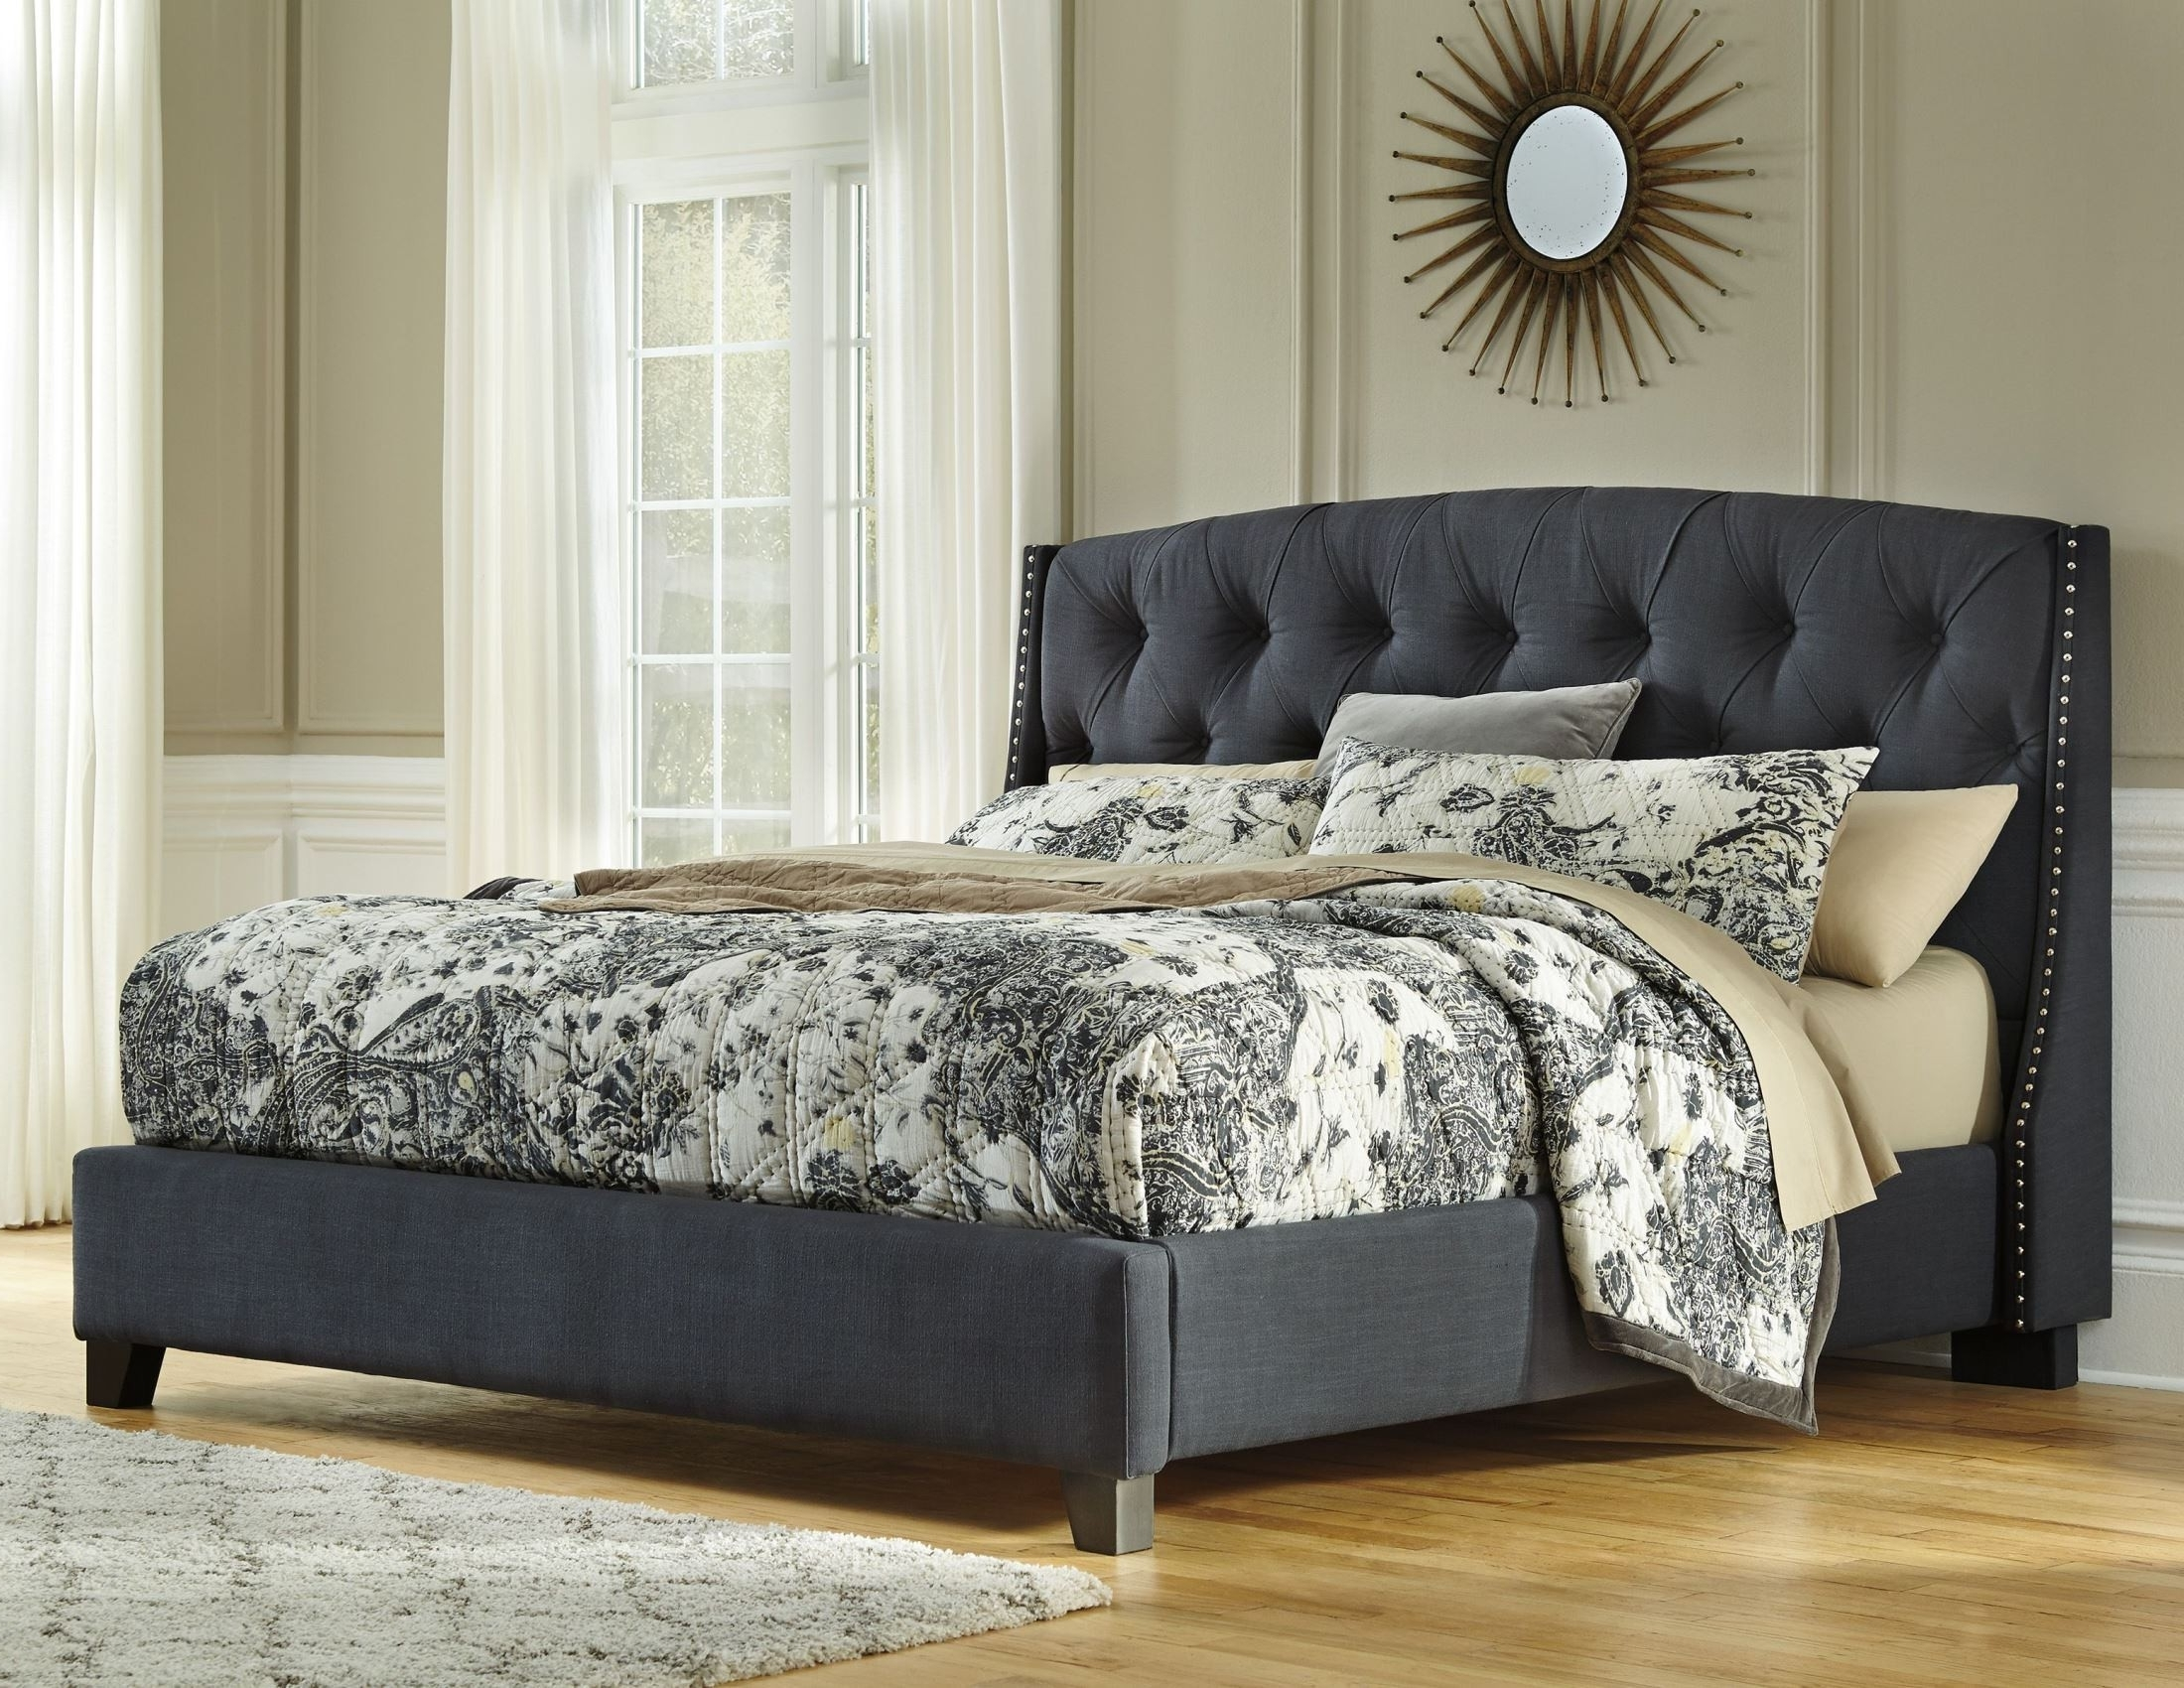 Well Known Ashley Tufted Sofas With Regard To King Upholstered Platform Bed From Ashley (b600 558 556 (View 12 of 20)